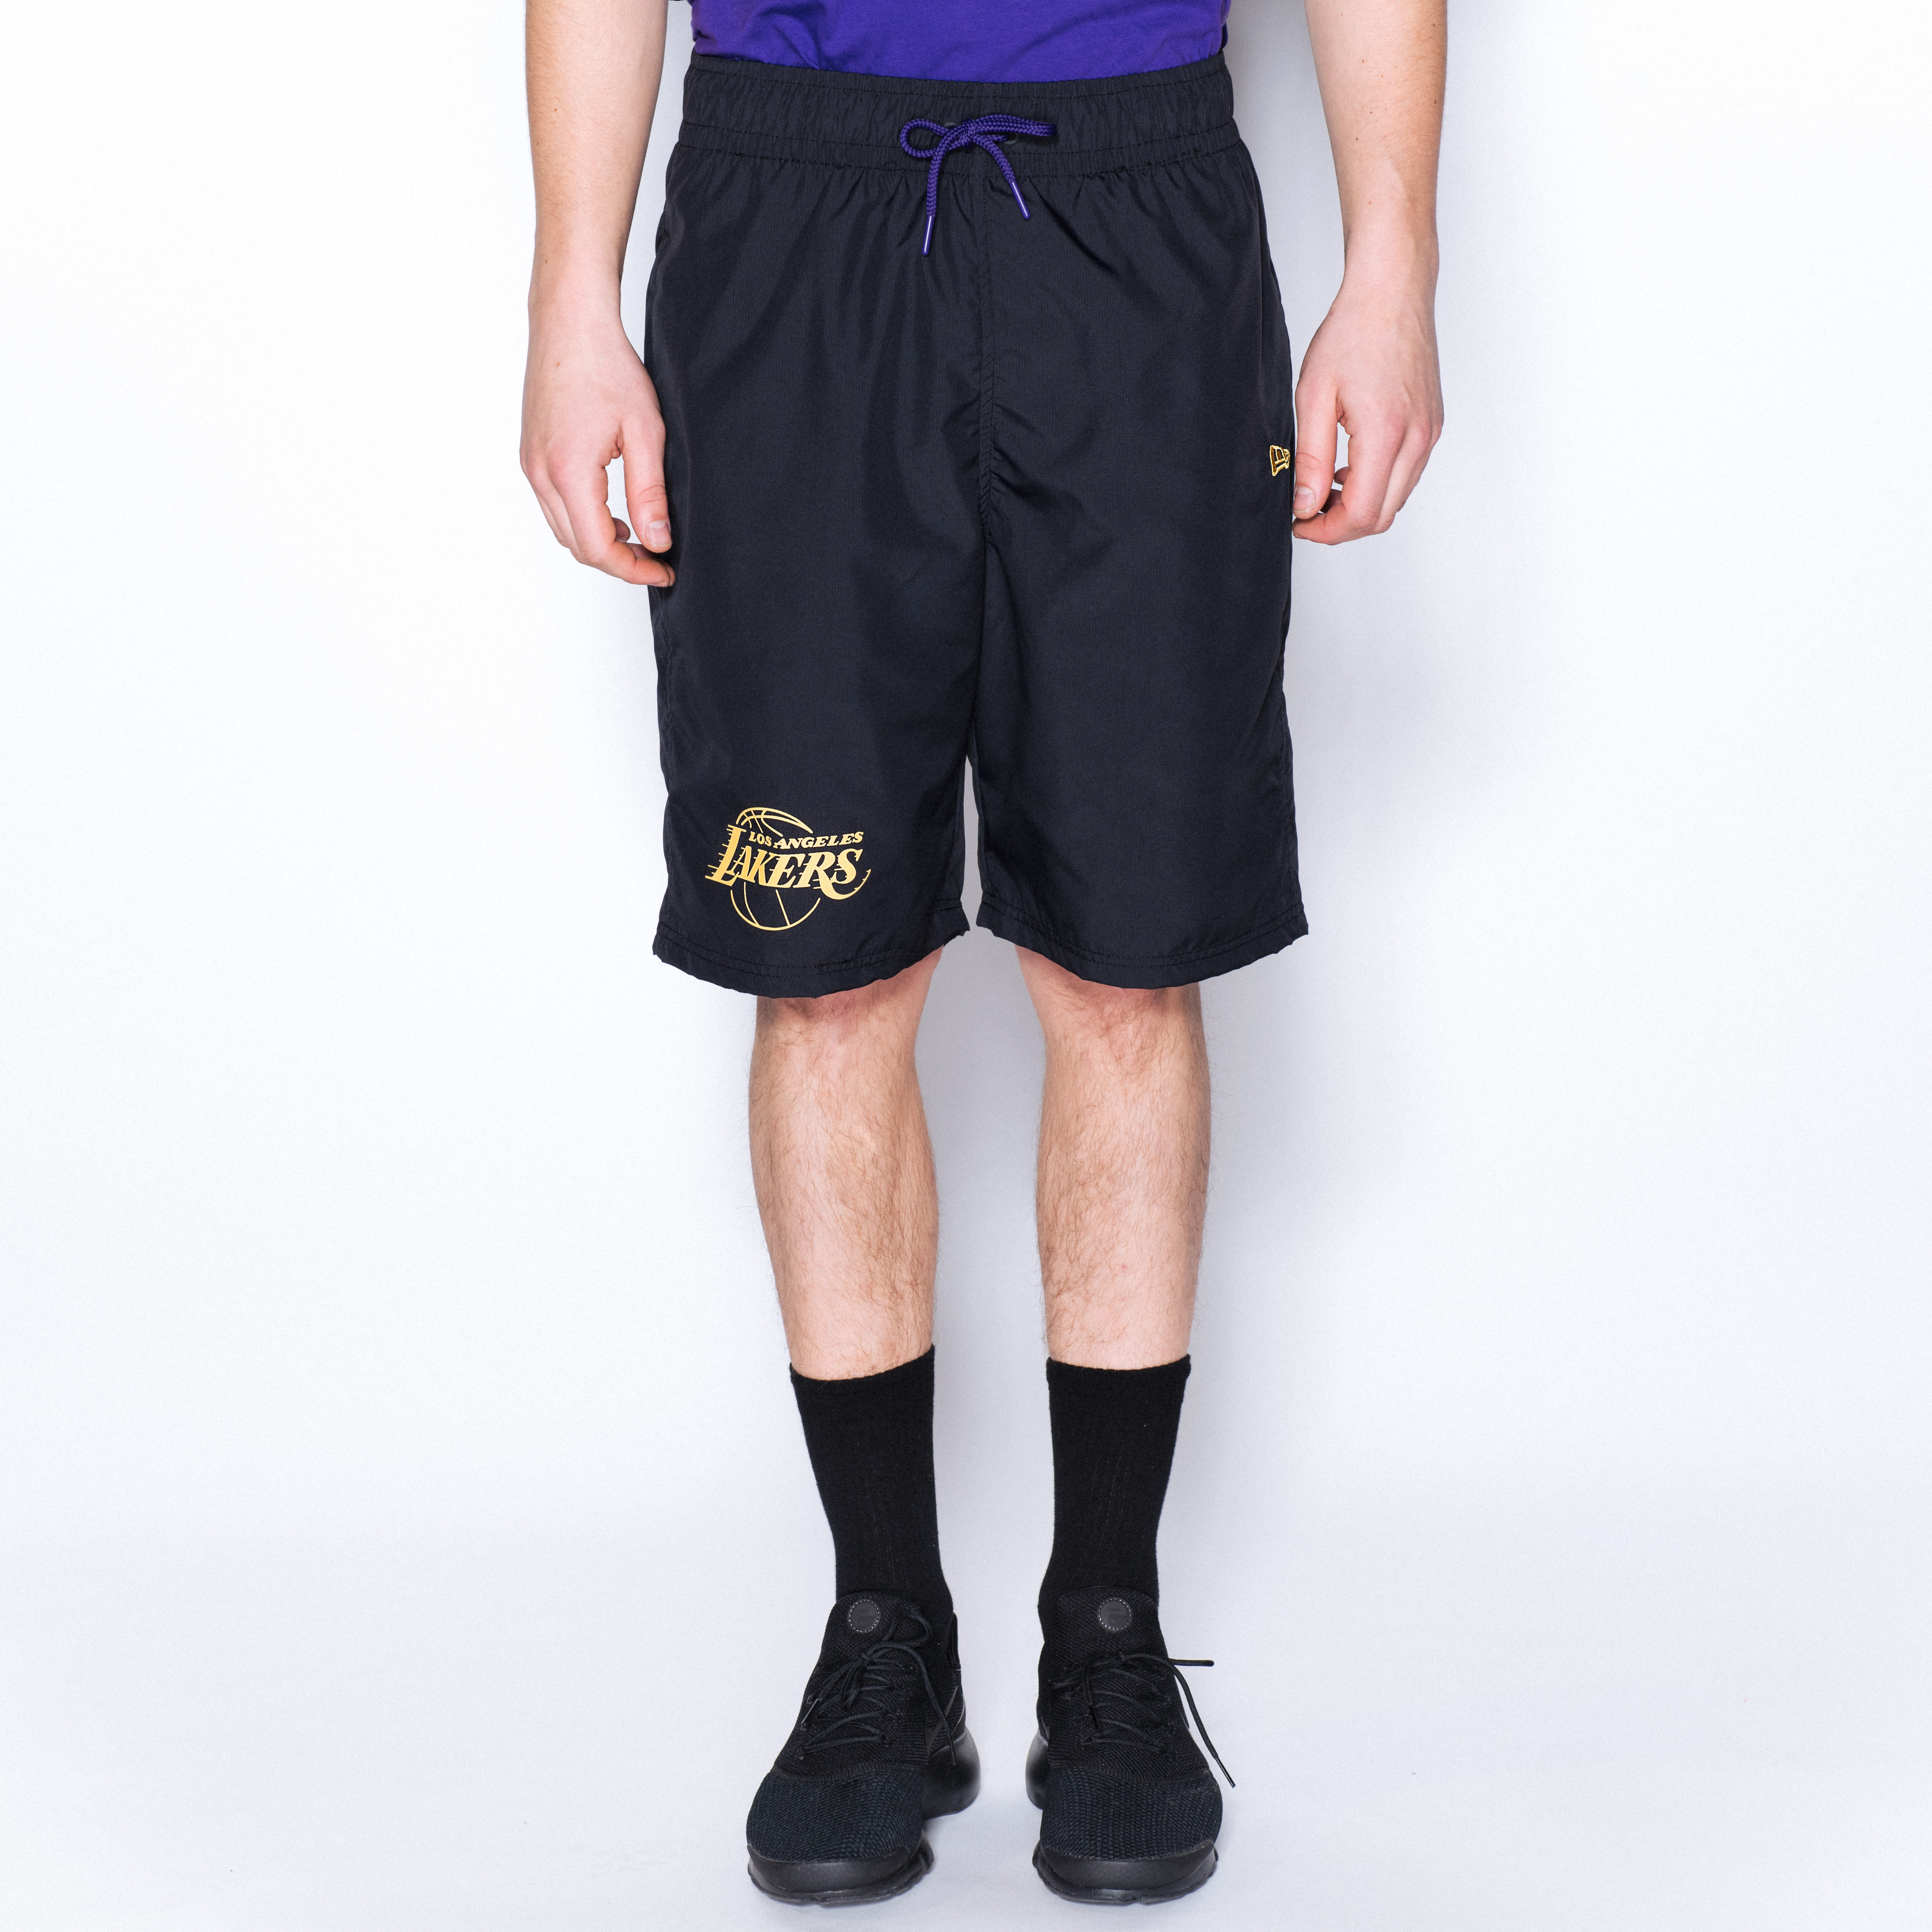 Los Angeles Lakers Established Date Black Shorts